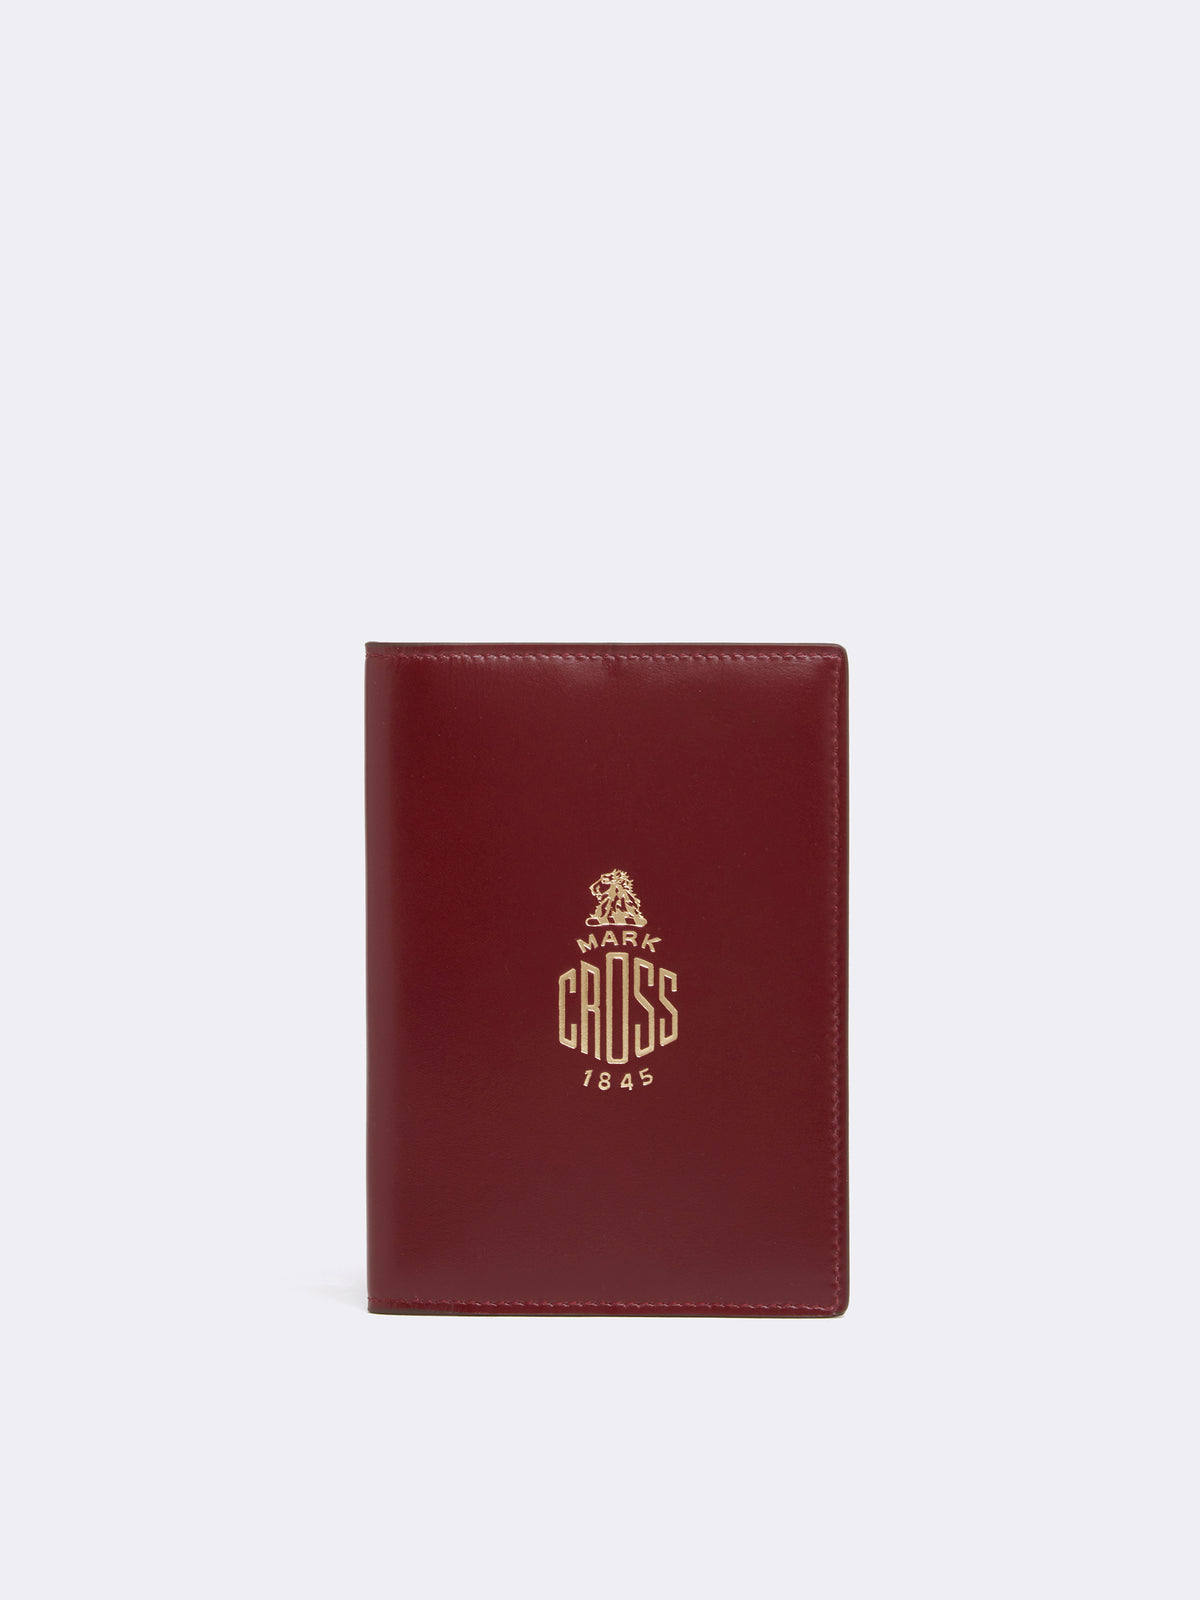 Mark Cross Leather Passport Cover Smooth Calf Burgundy Front